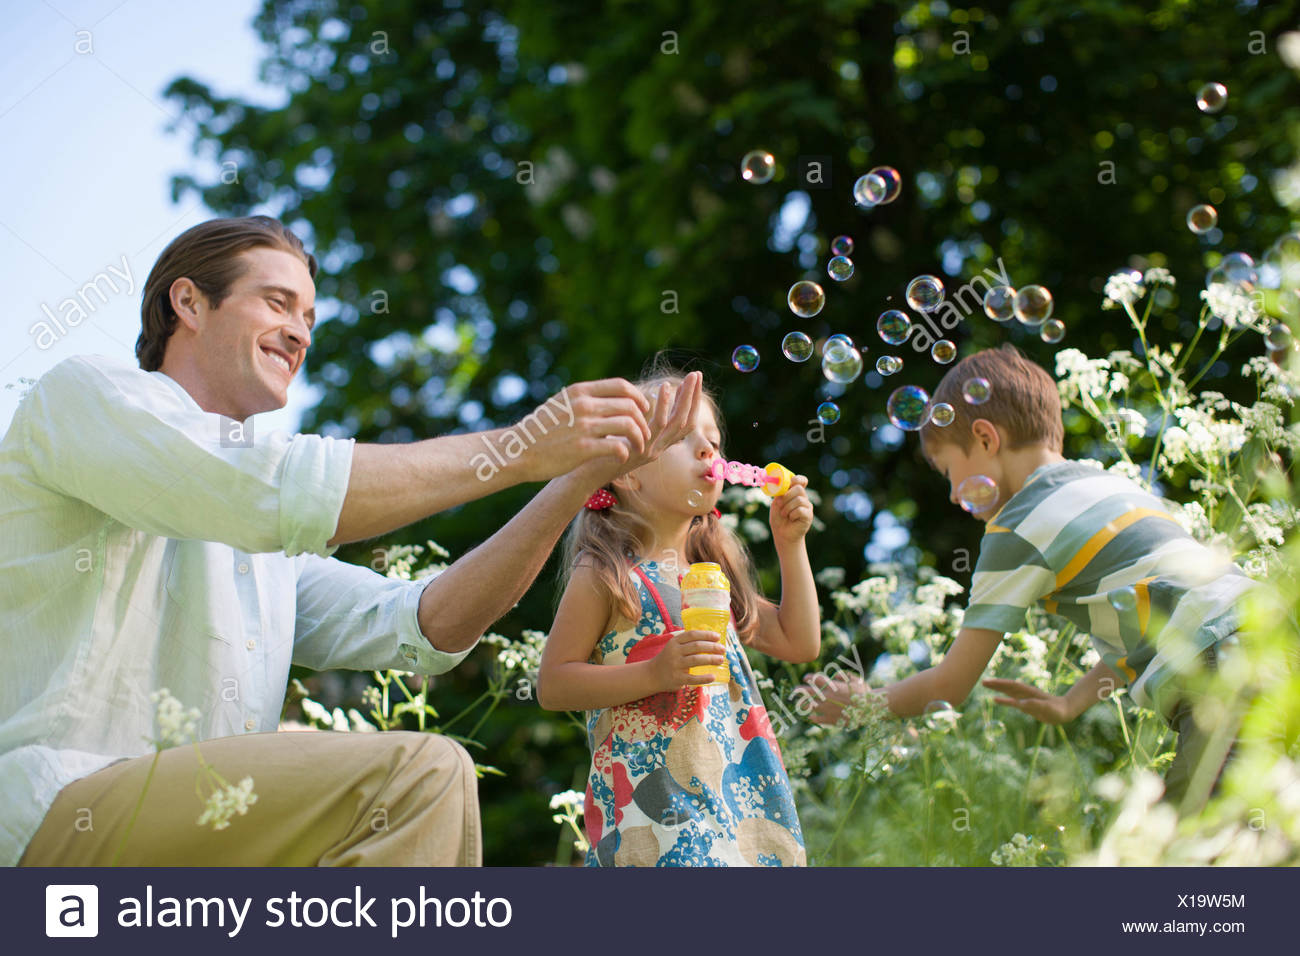 Family playing with bubbles outdoors - Stock Image